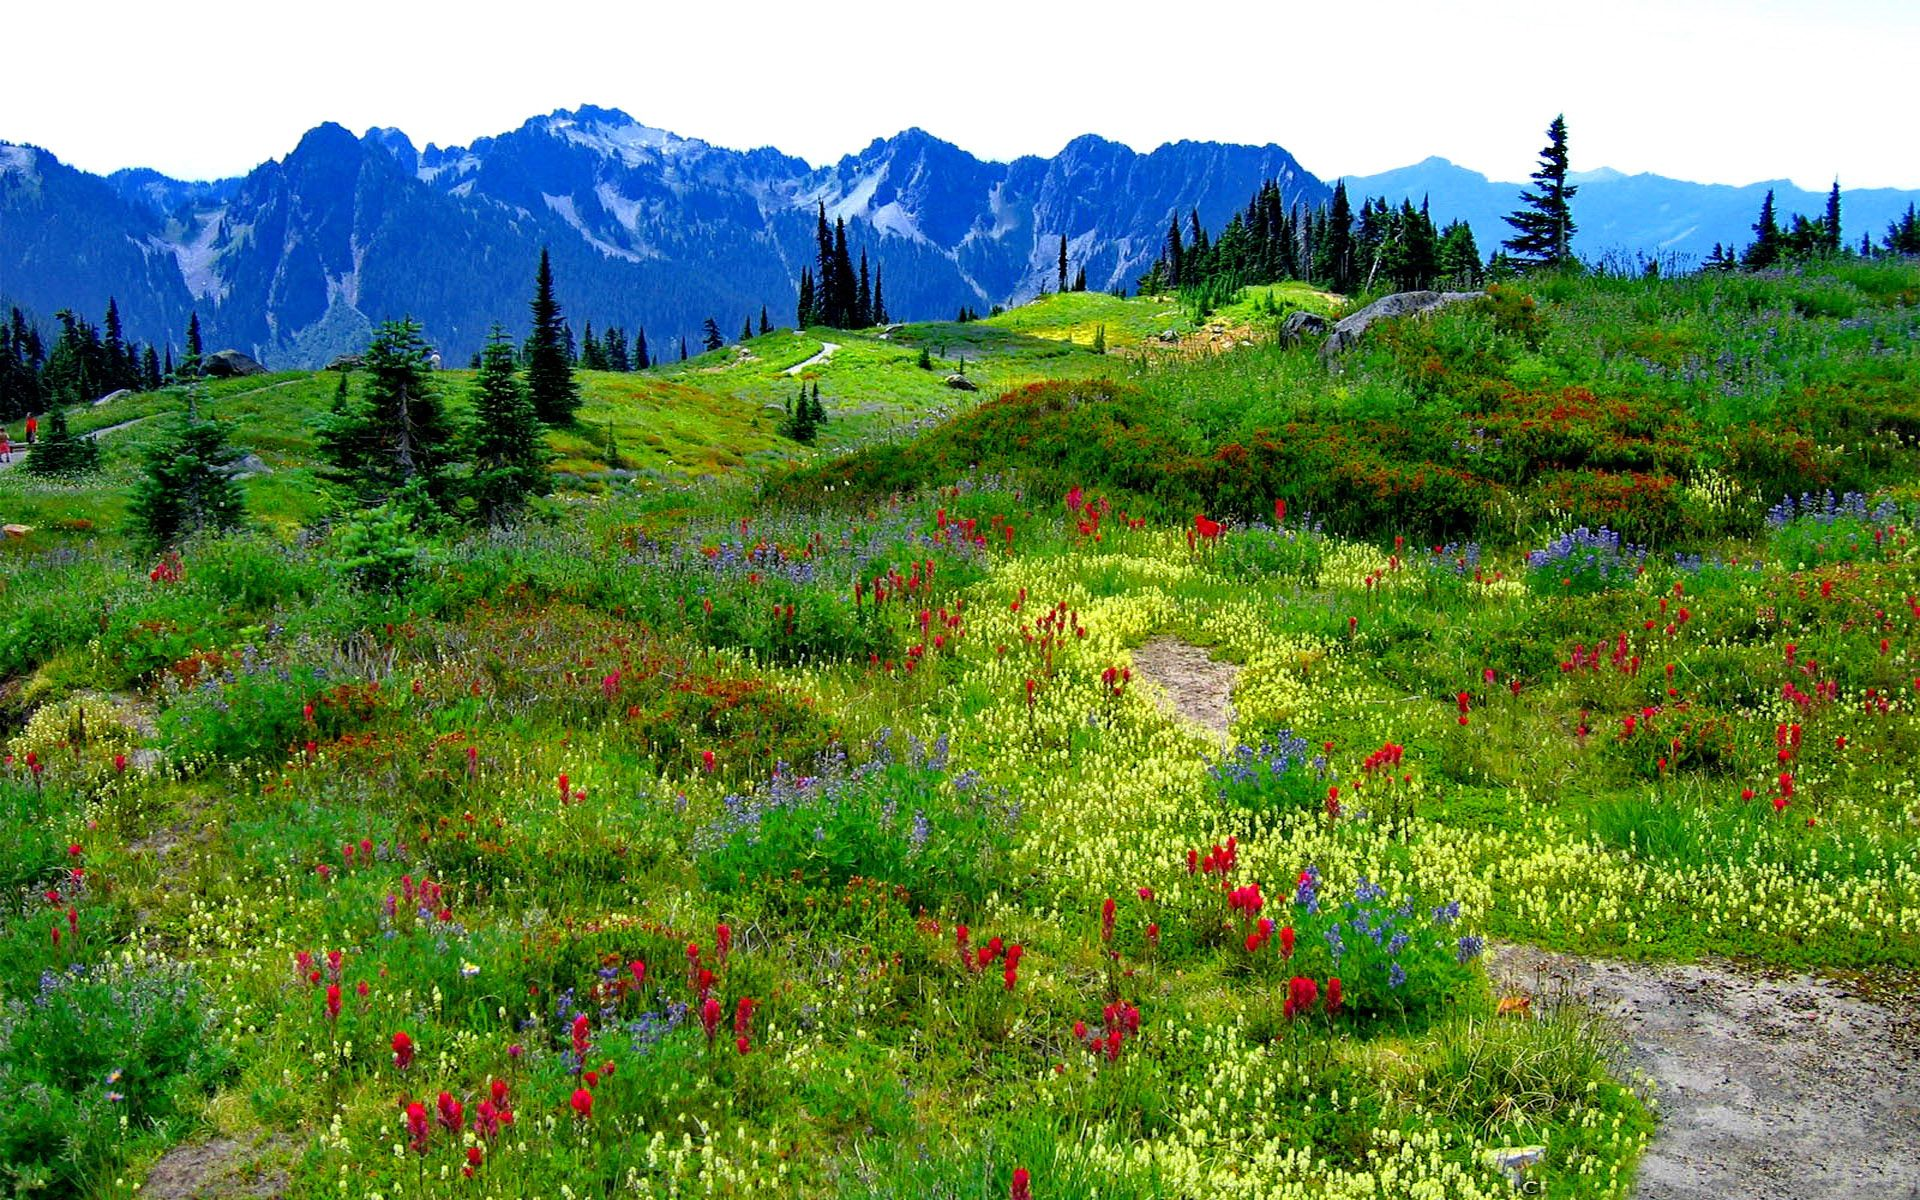 Download Green Mountain Meadow With Flowers In Multiple Colors Mountains With Snow Wallpaper For Desktop F Desktop Wallpaper Green Mountain Mountain Wallpaper